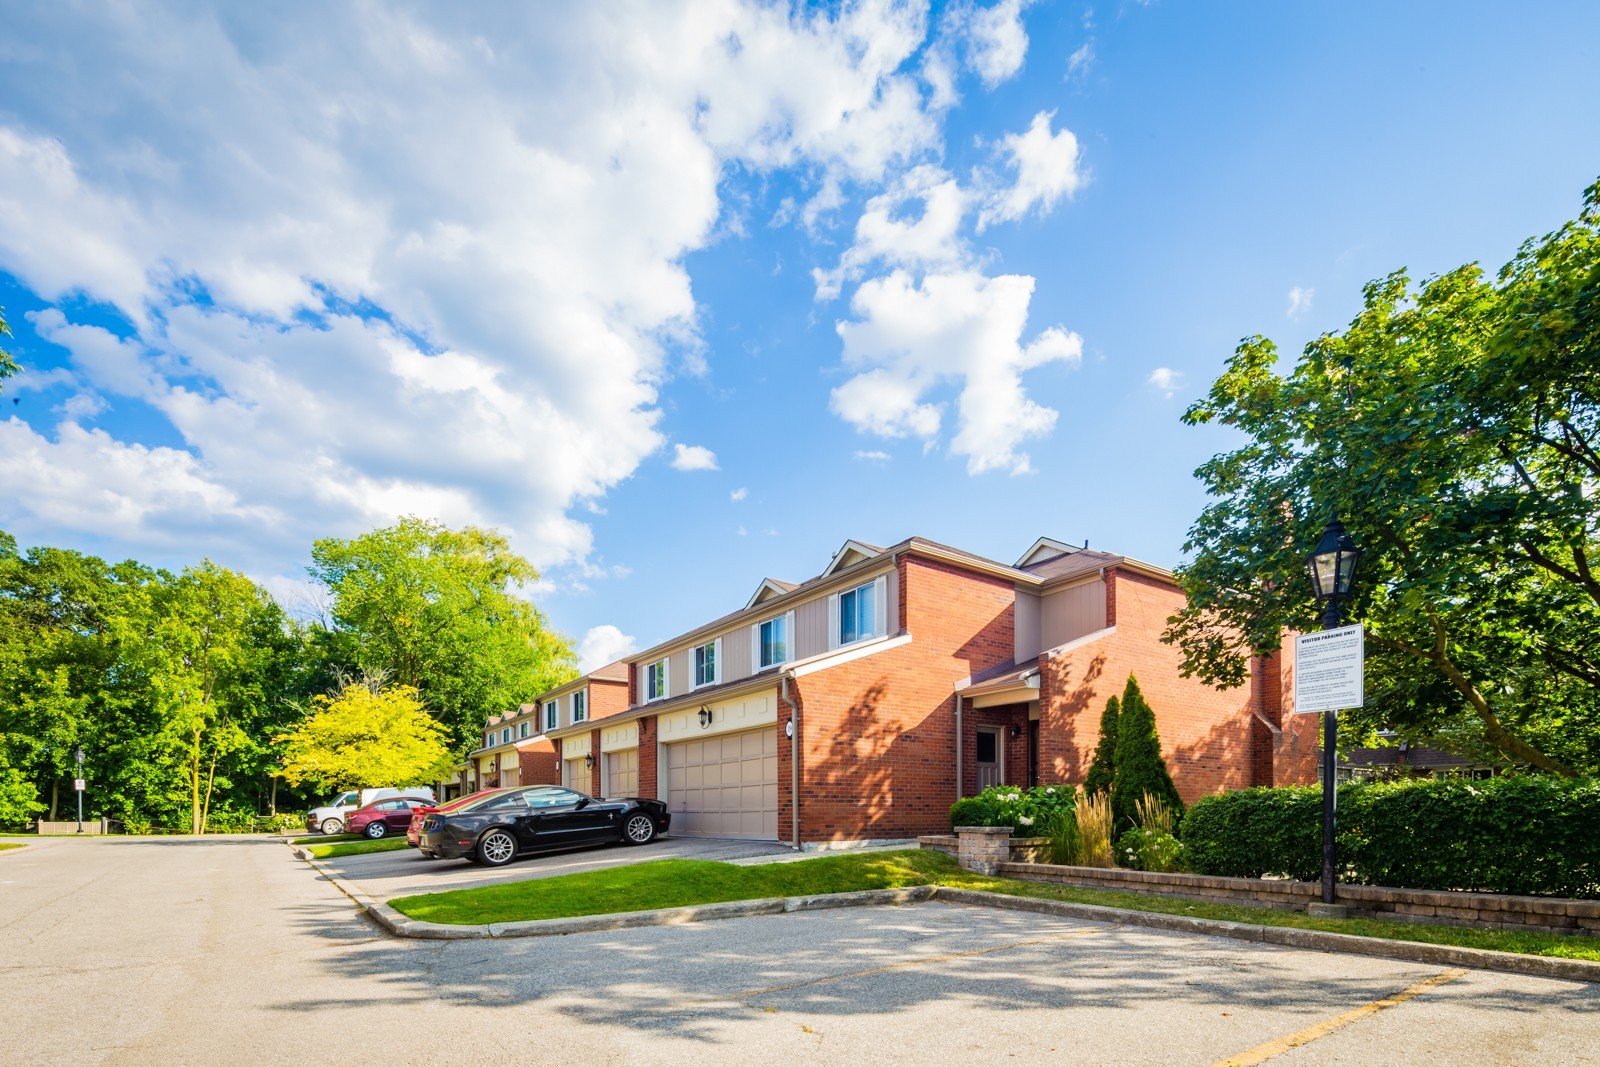 150 South Service Road Townhouses at 150 S Service Rd, Mississauga 0